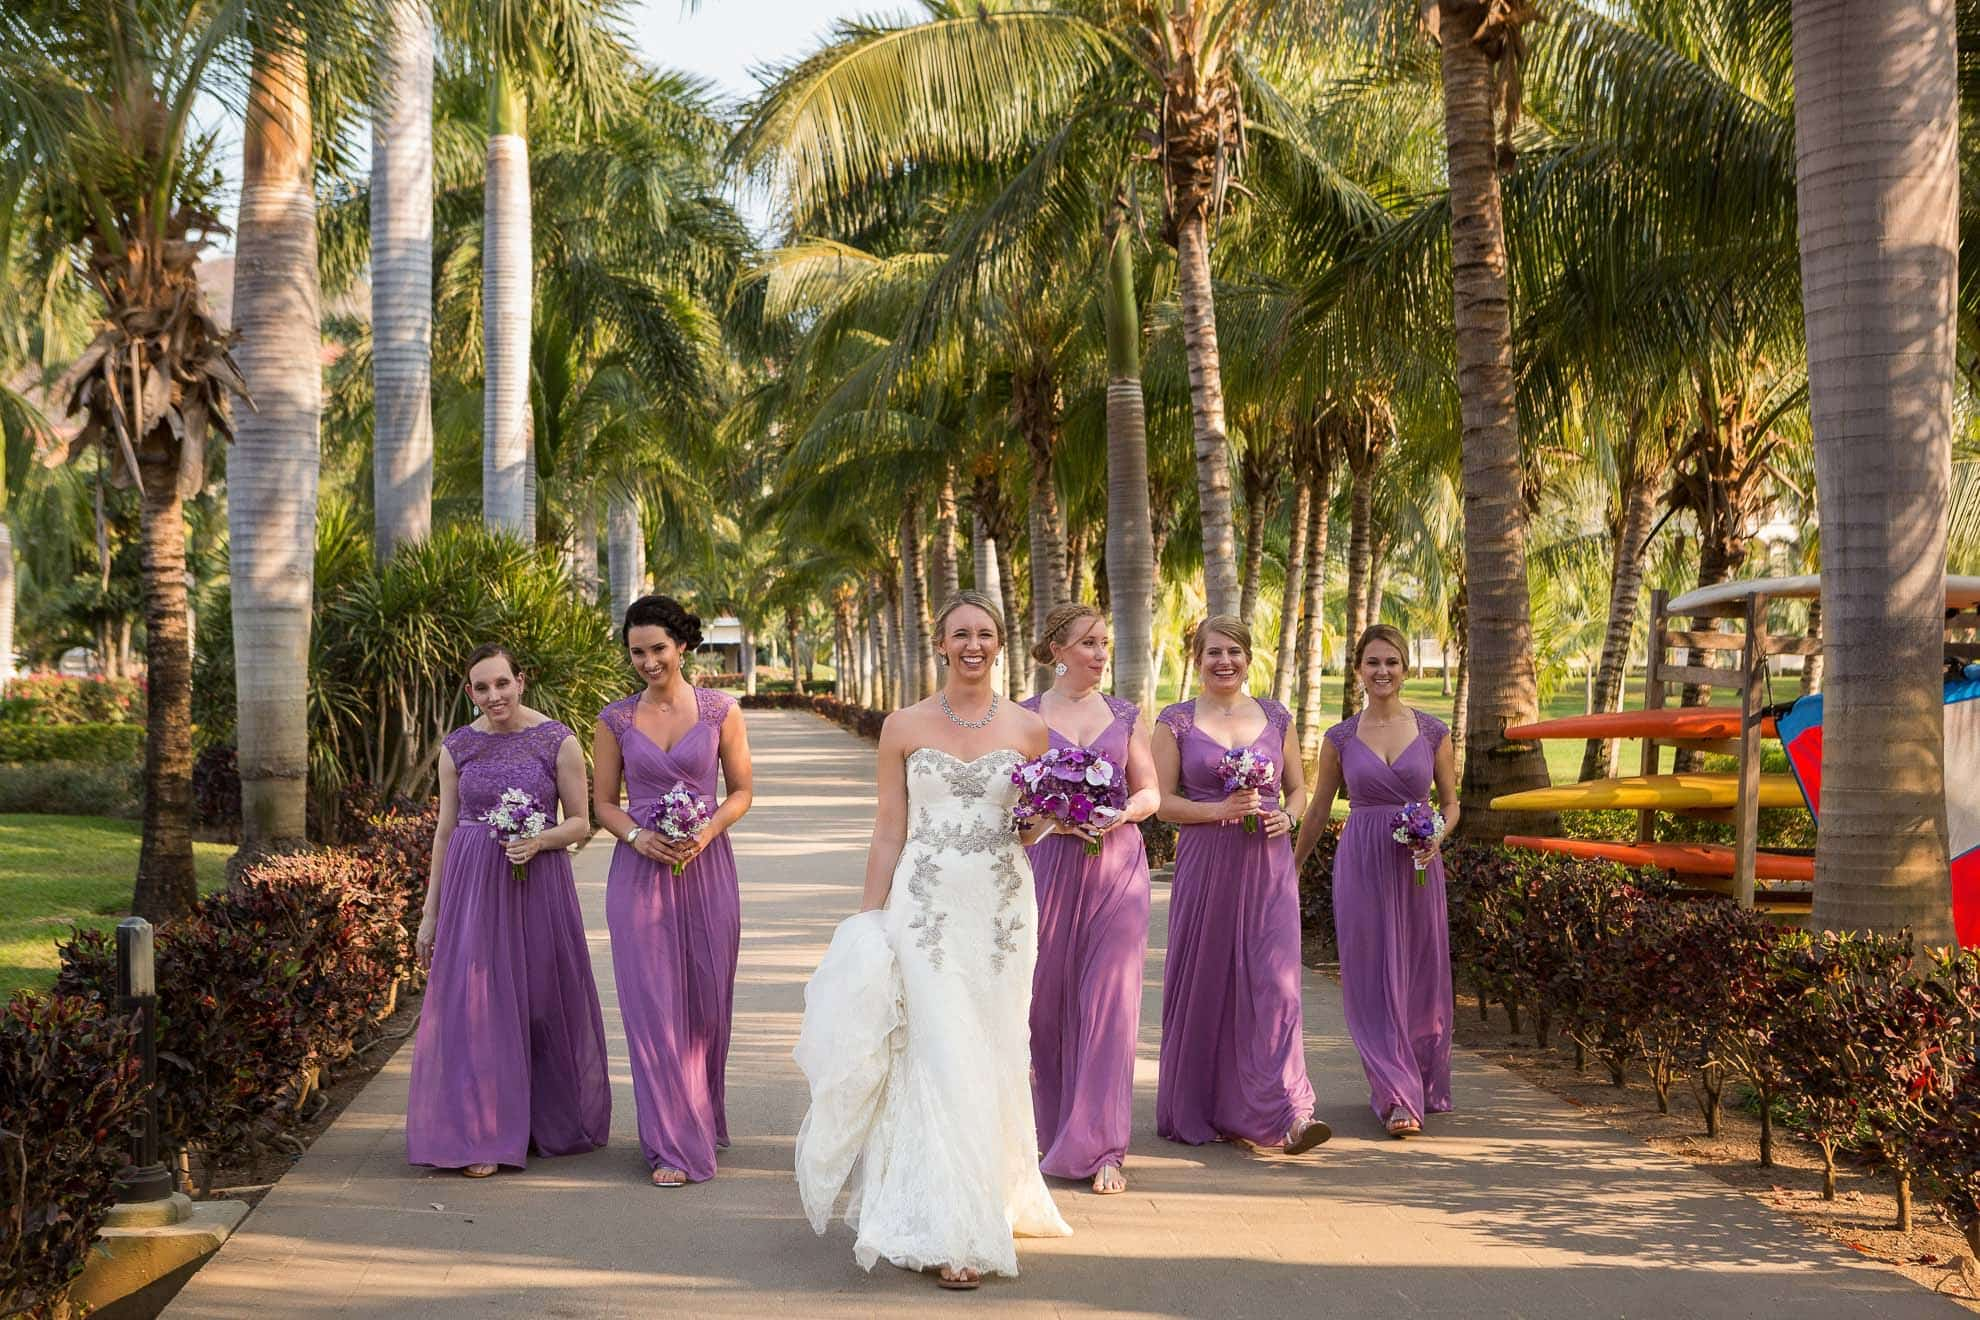 Bride and Bride's maids at hotel riu palace